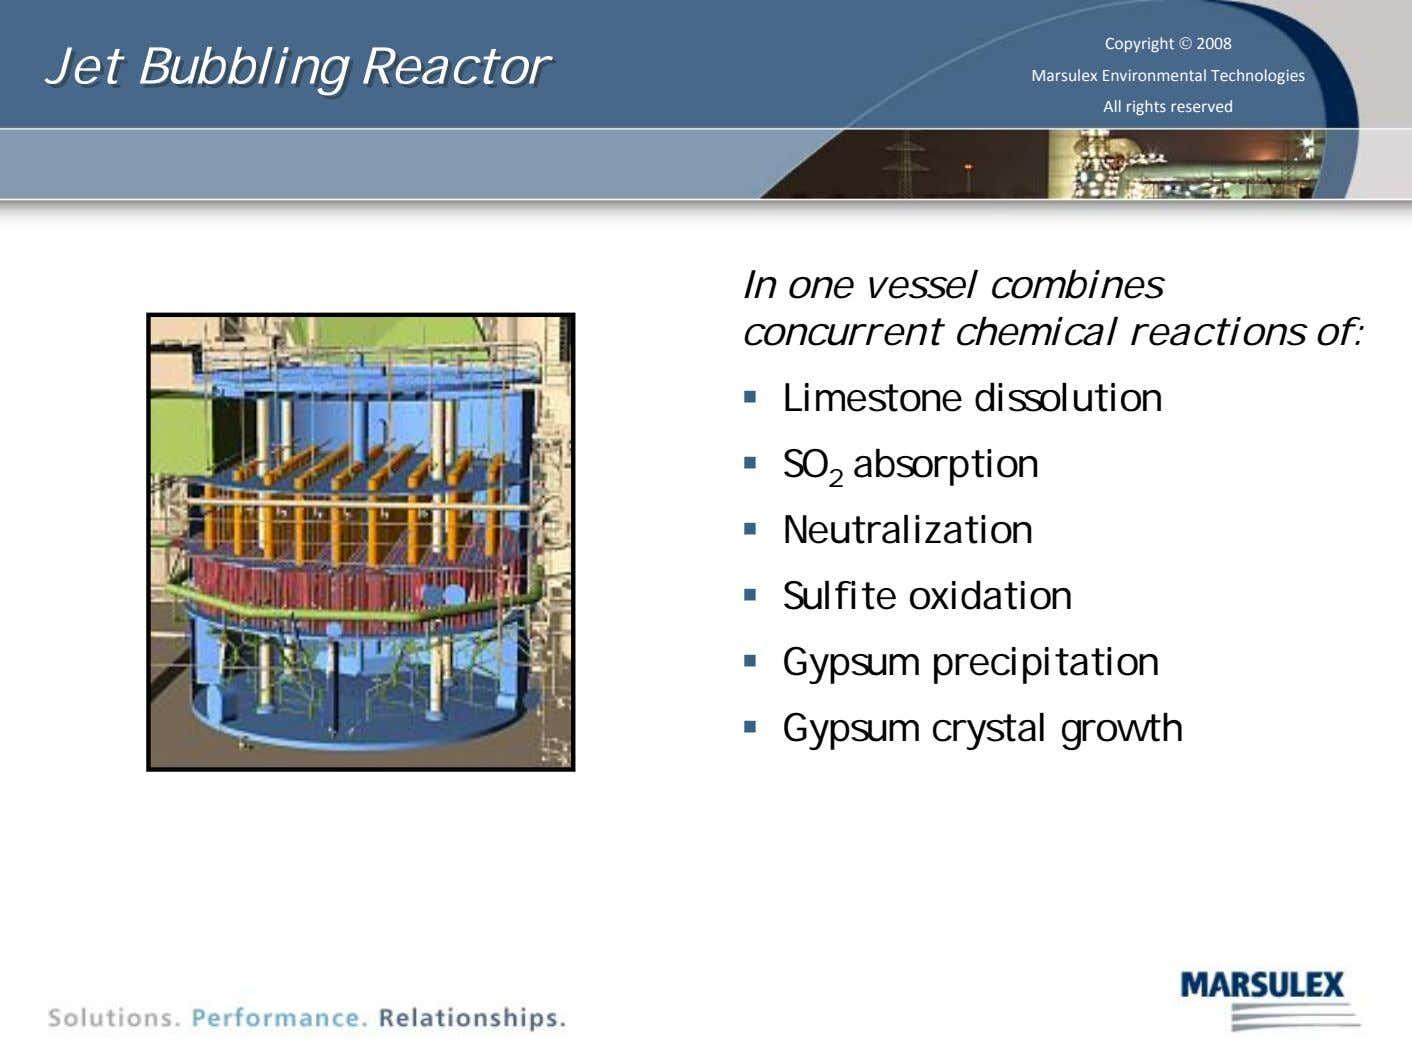 Jet Jet Bubbling Bubbling Reactor Reactor Copyright © 2008 Marsulex Environmental Technologies All rights reserved In